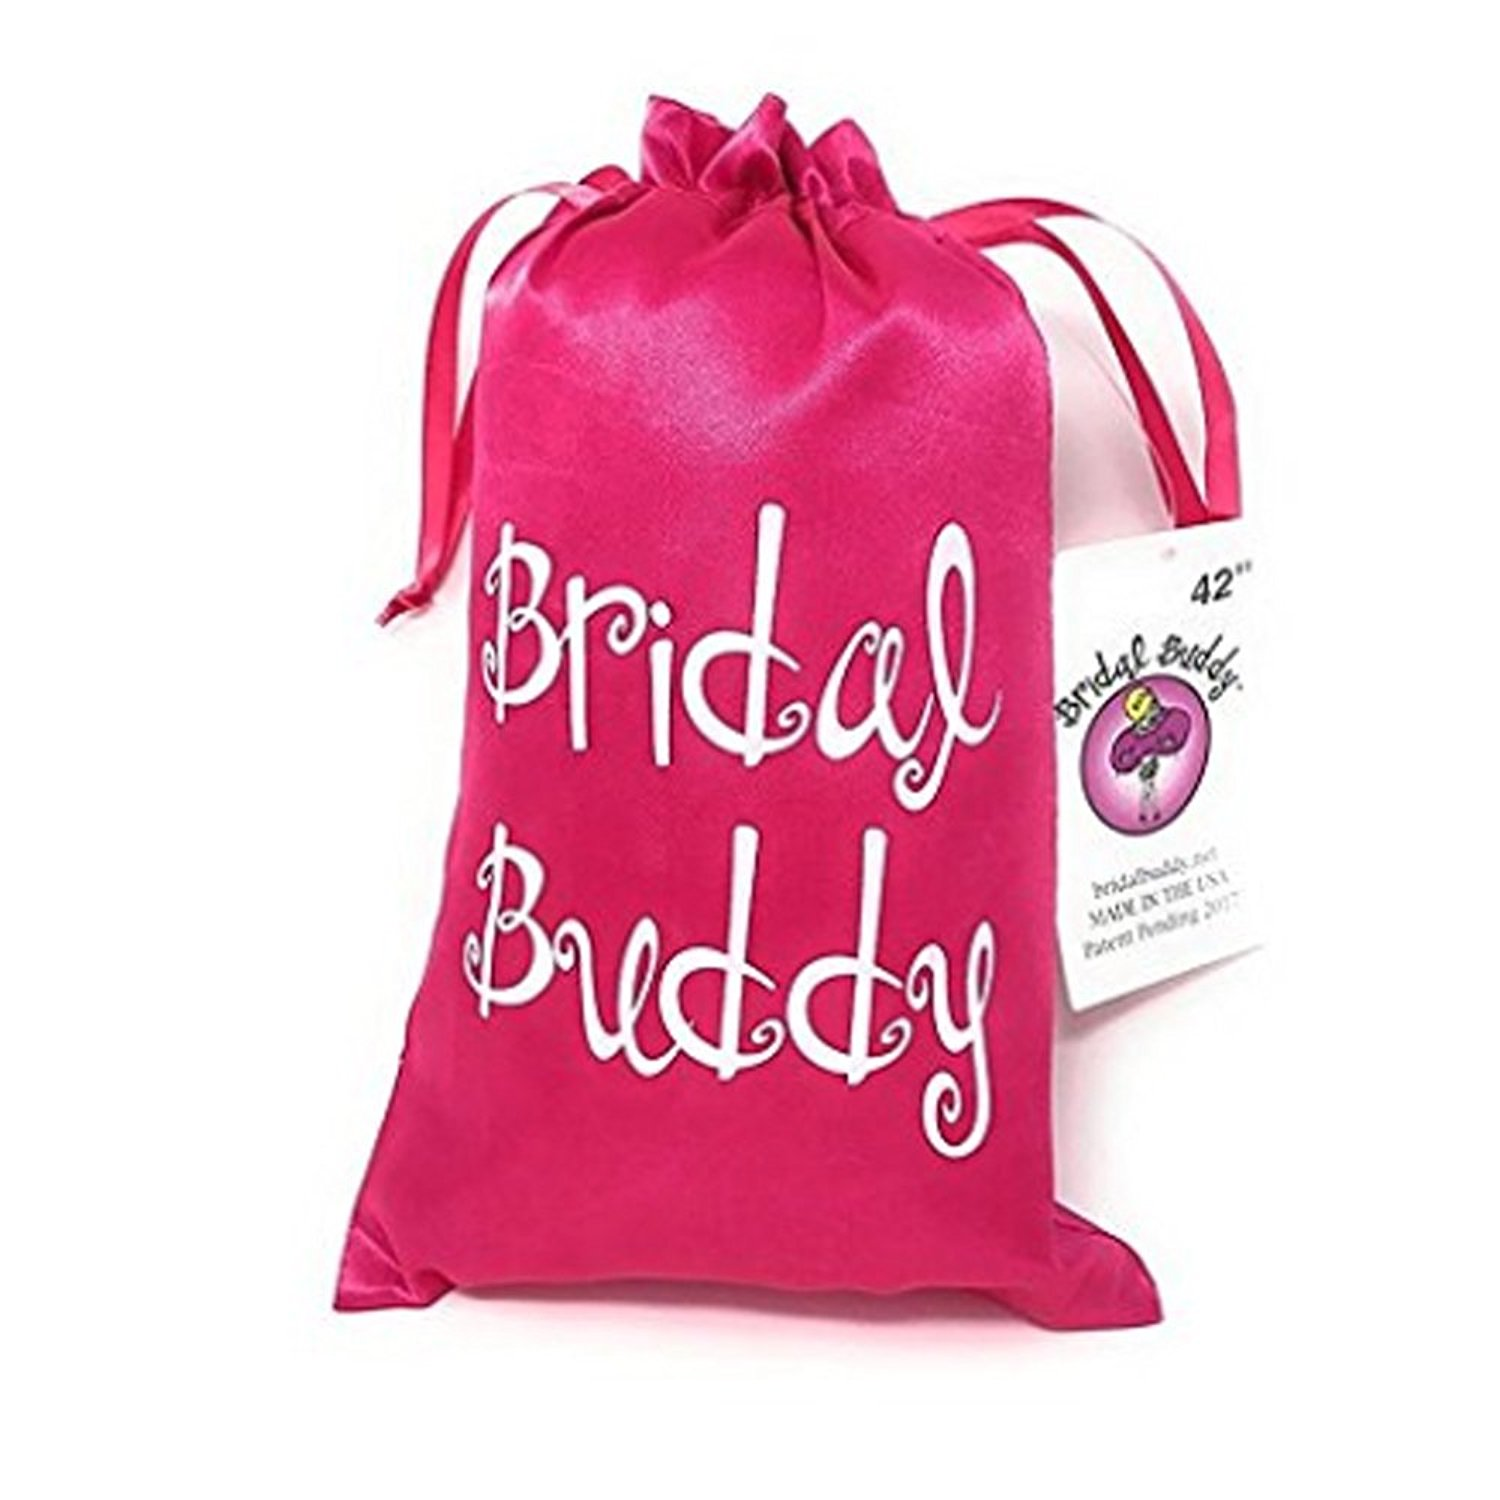 Bridal Buddy Use The Bathroom In Your Wedding Gown On